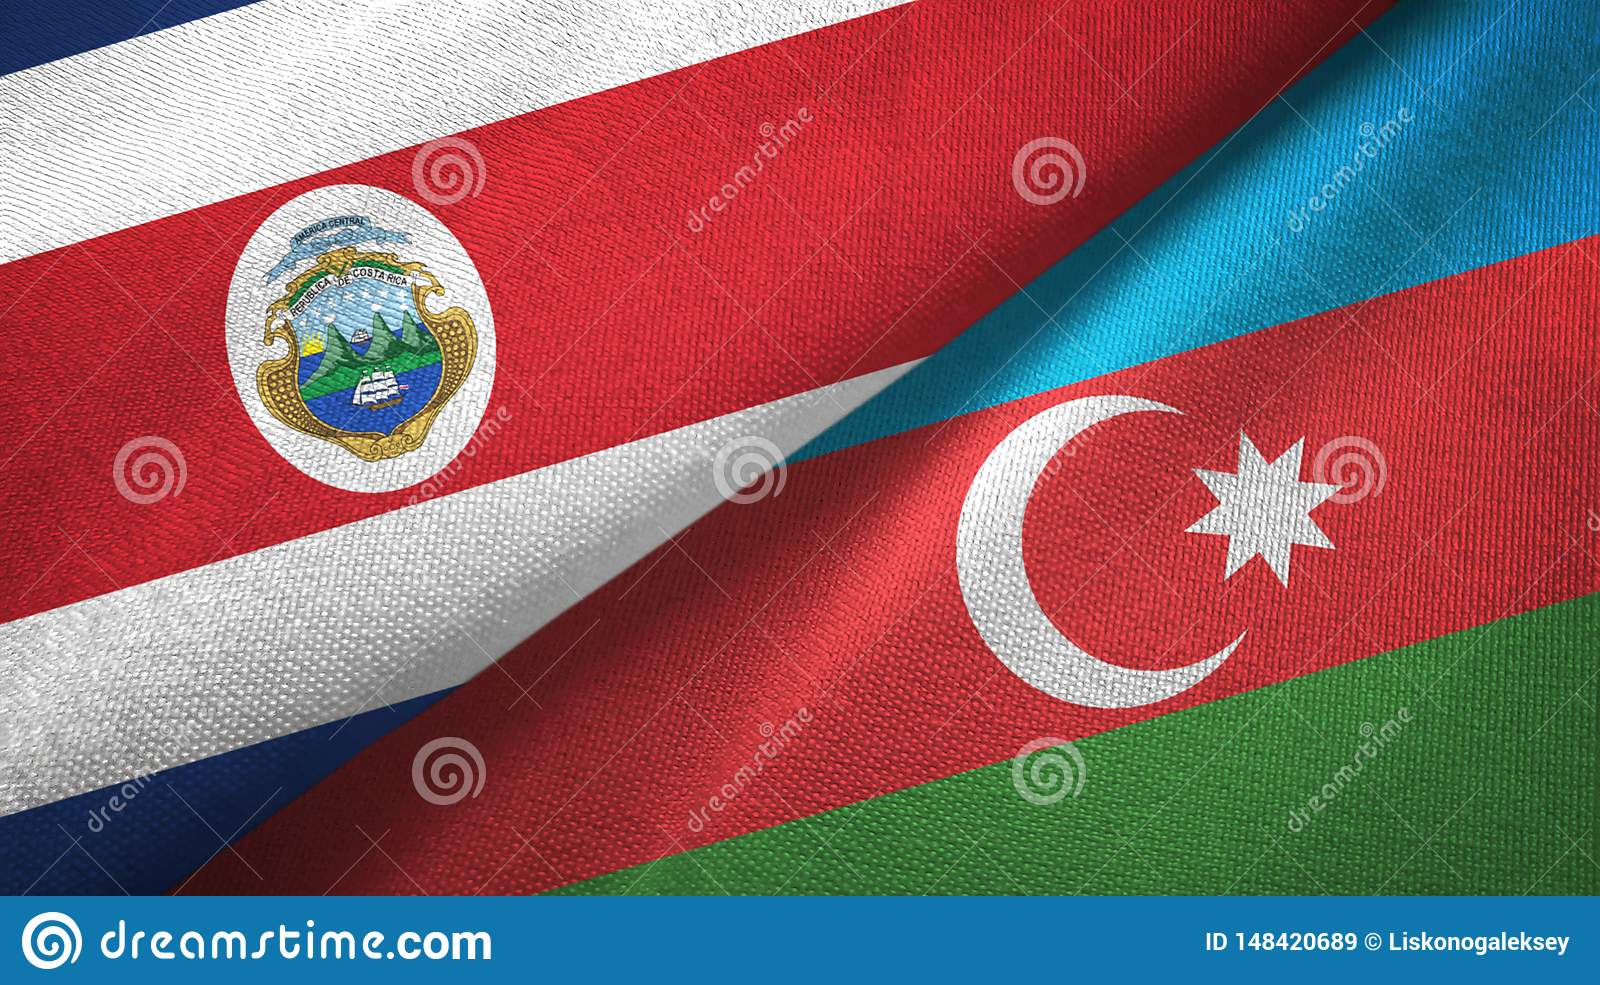 Costa Rica and Azerbaijan two flags textile cloth, fabric texture